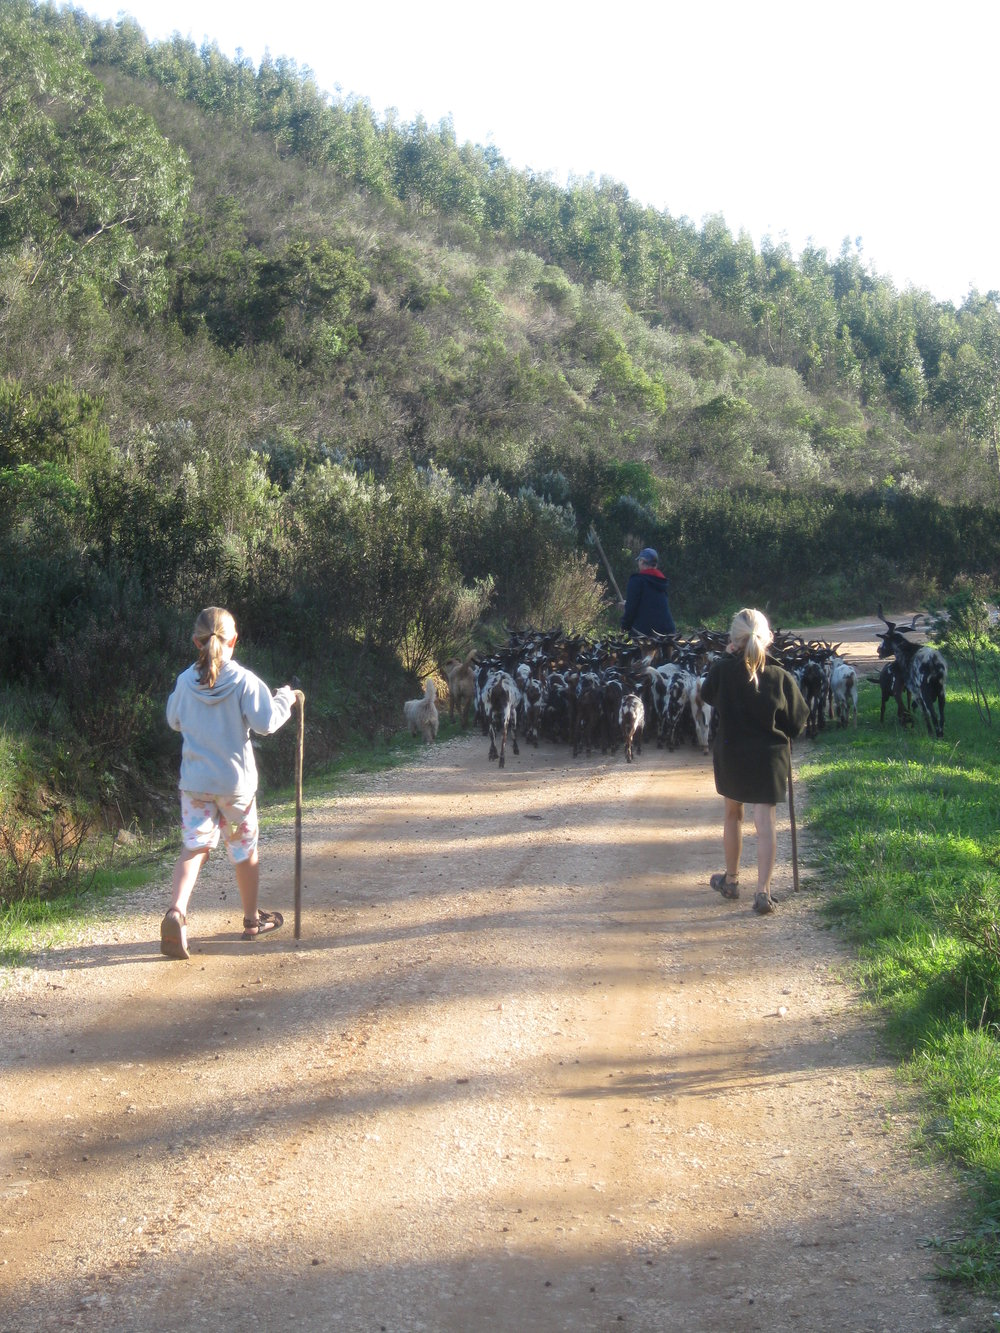 Madeleine & Johanna walking a herd of goats down the road to browse, Portugal, 2010.